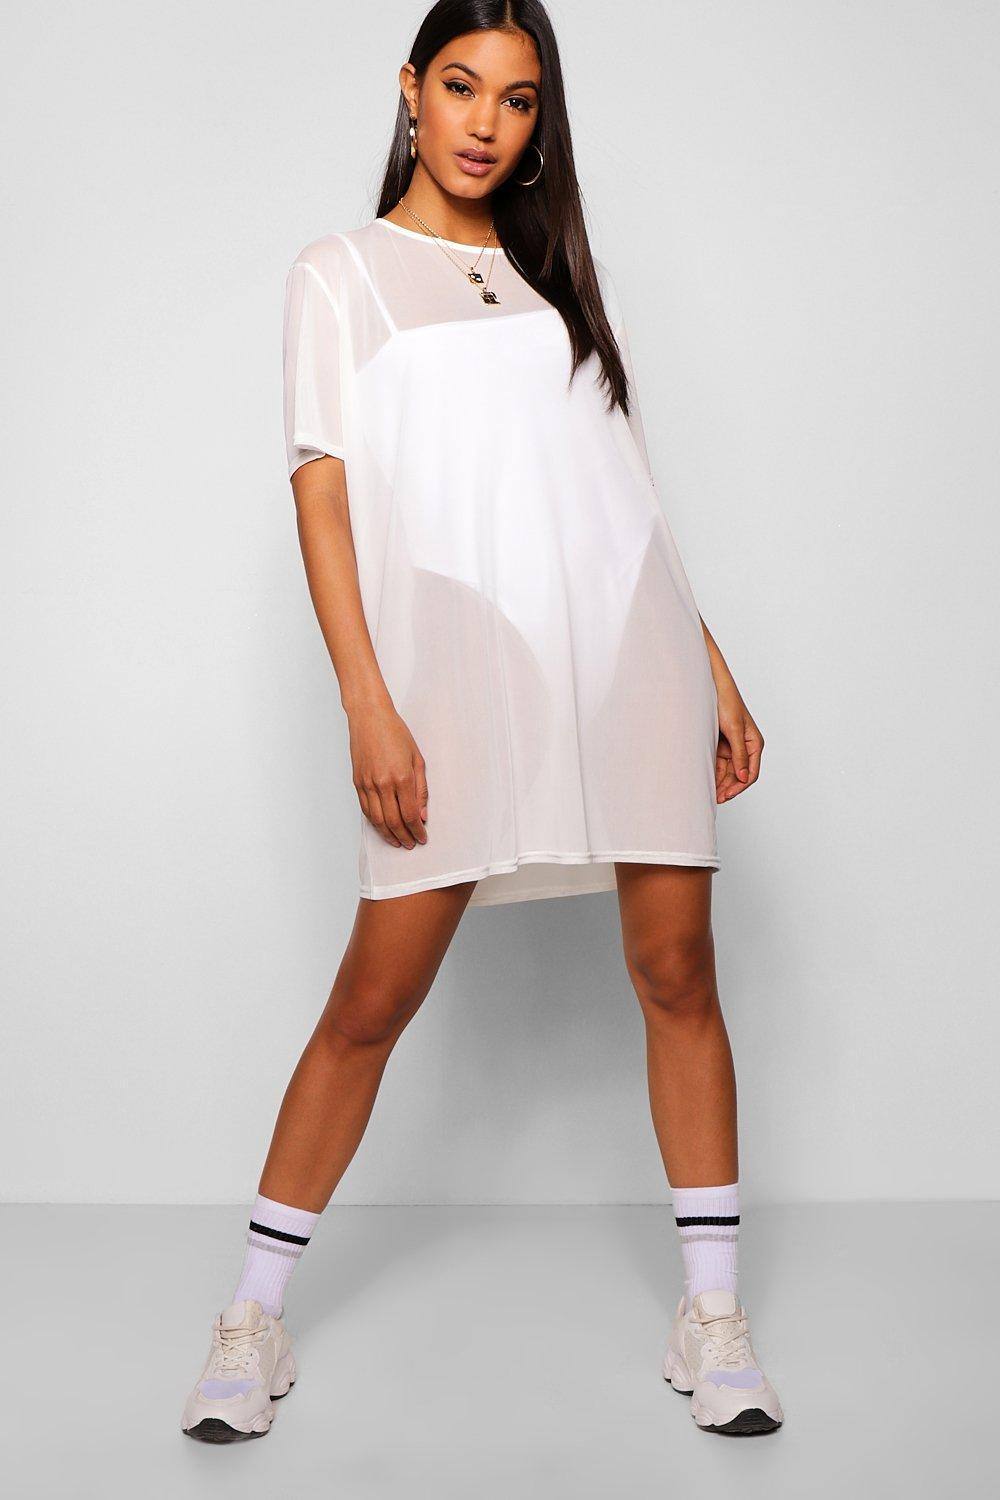 1fbdd7bc5f1 Boohoo - White Oversized Mesh T-shirt Dress - Lyst. View fullscreen